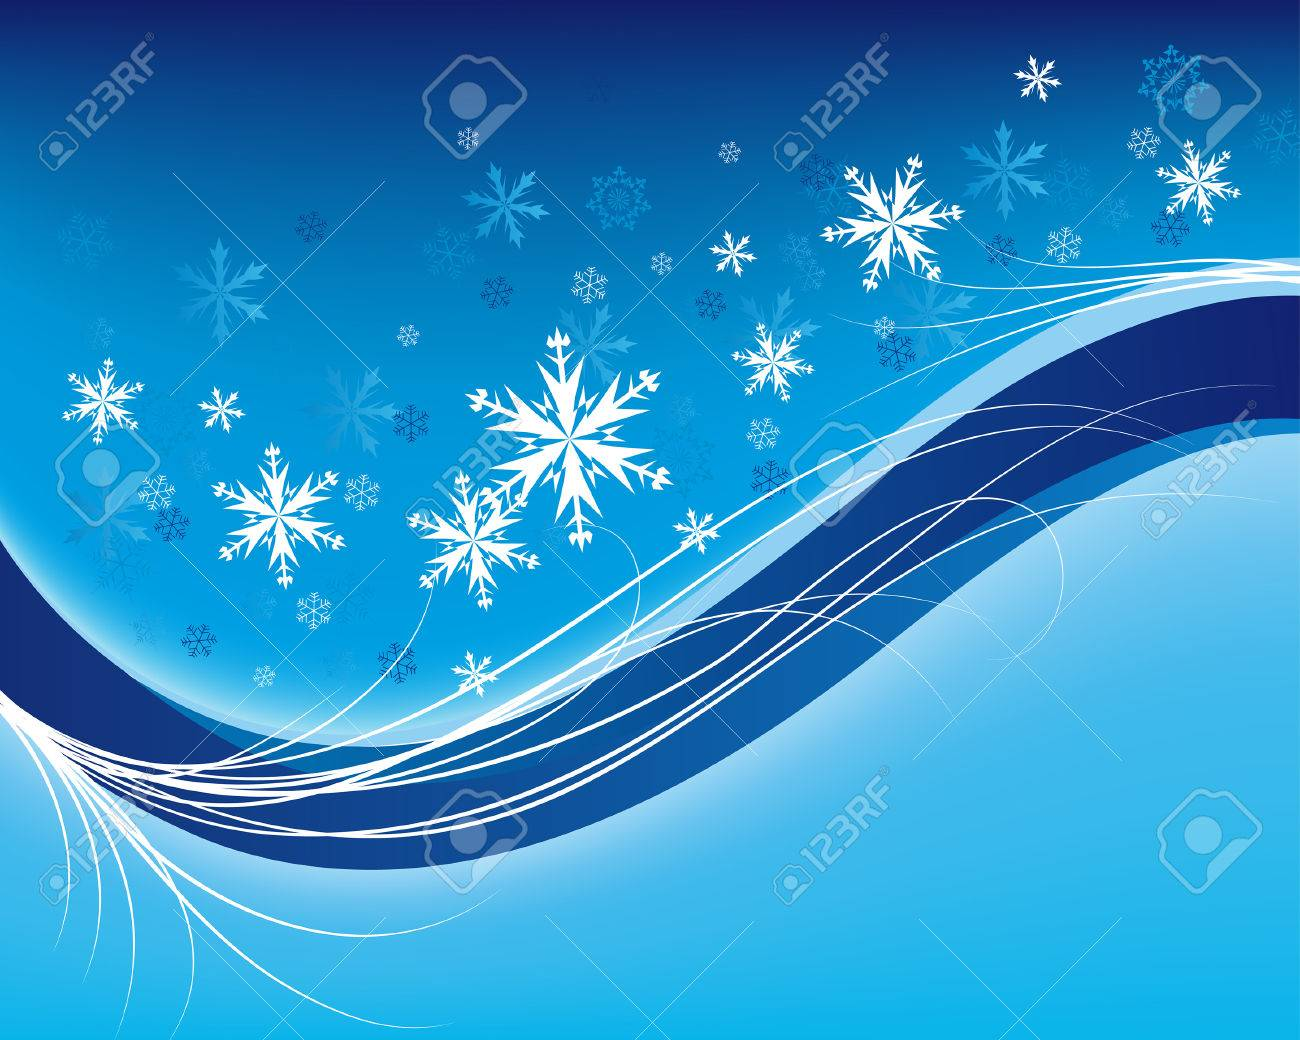 Beautiful vector christmas new year background for design use - Beautiful Vector Christmas New Year Background For Design Use Stock Vector 5680544